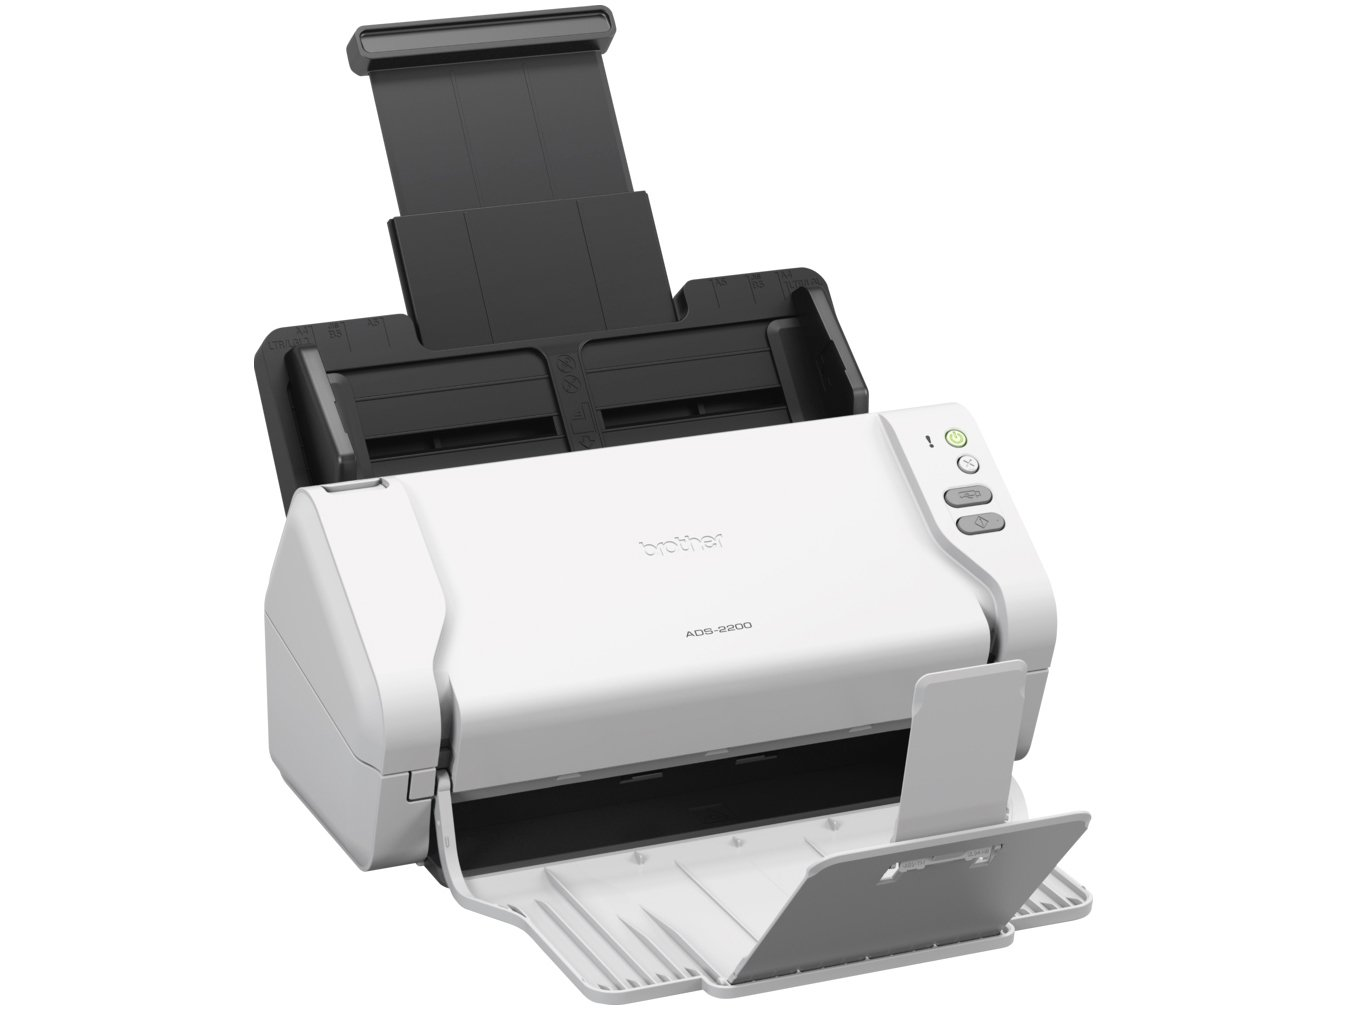 Foto 4 - Scanner de Mesa Brother ADS-2200 Colorido - 600dpi